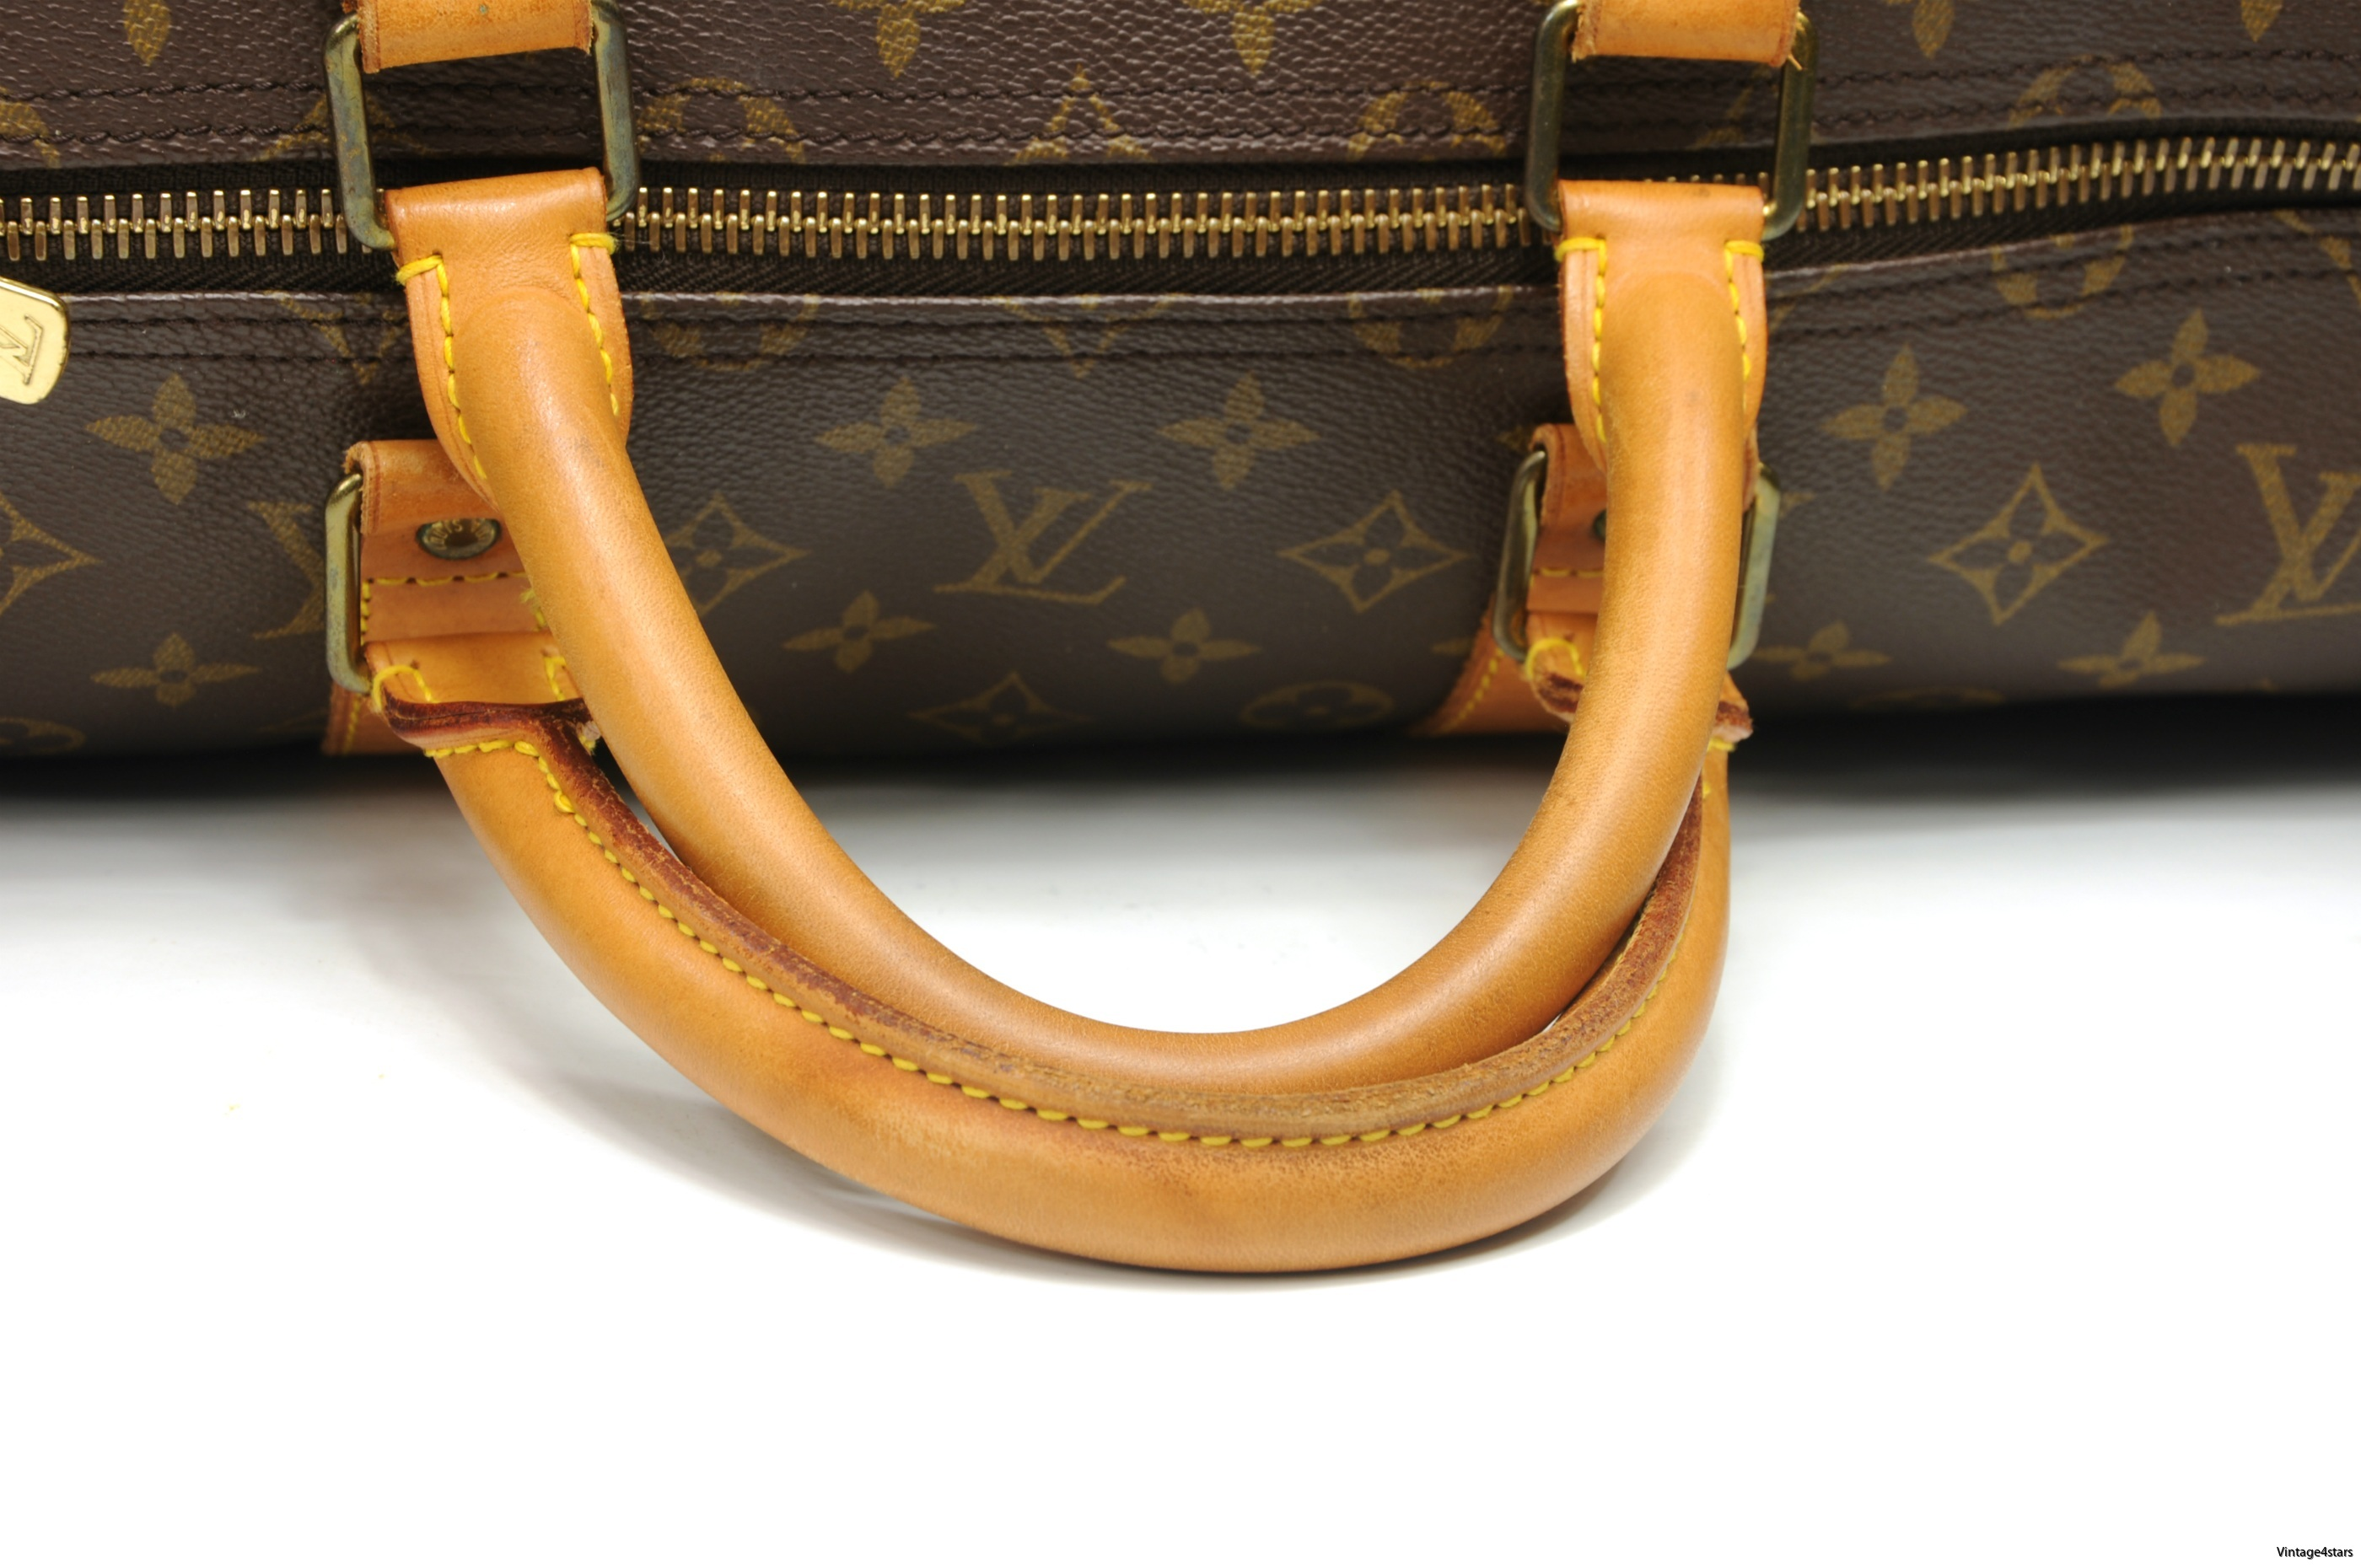 Louis vuitton Keepall 55 203